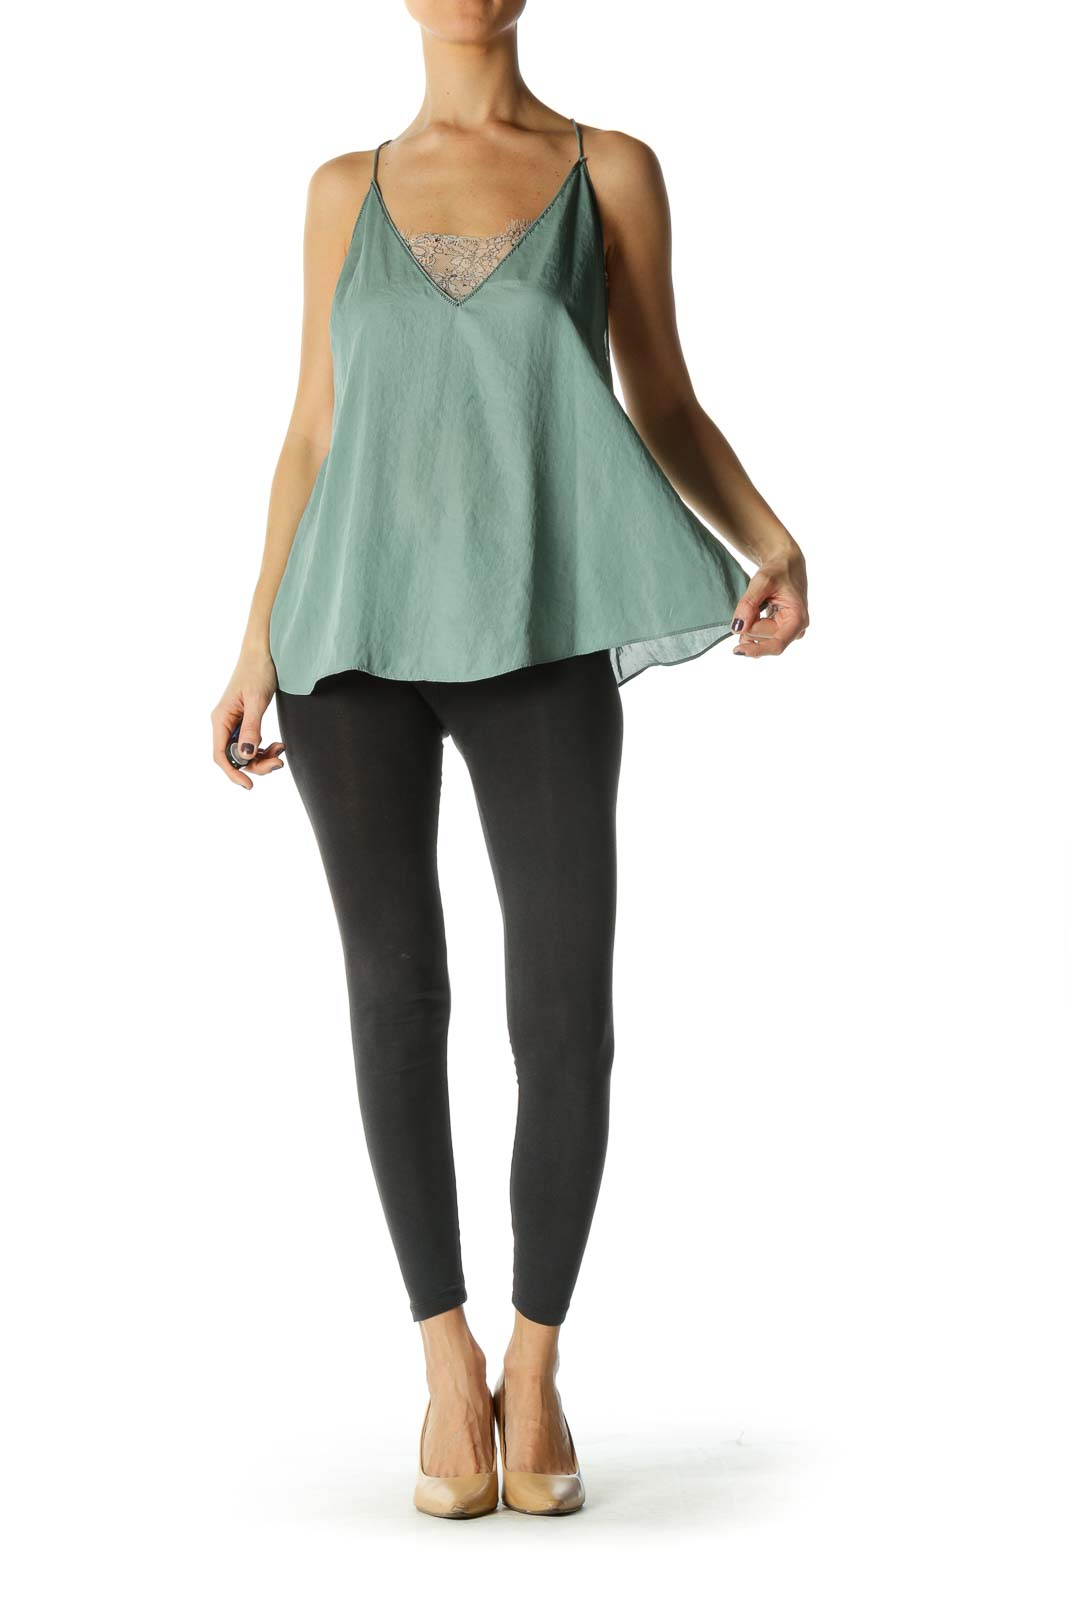 Green Flared Tank Top w/ White Lace Liner